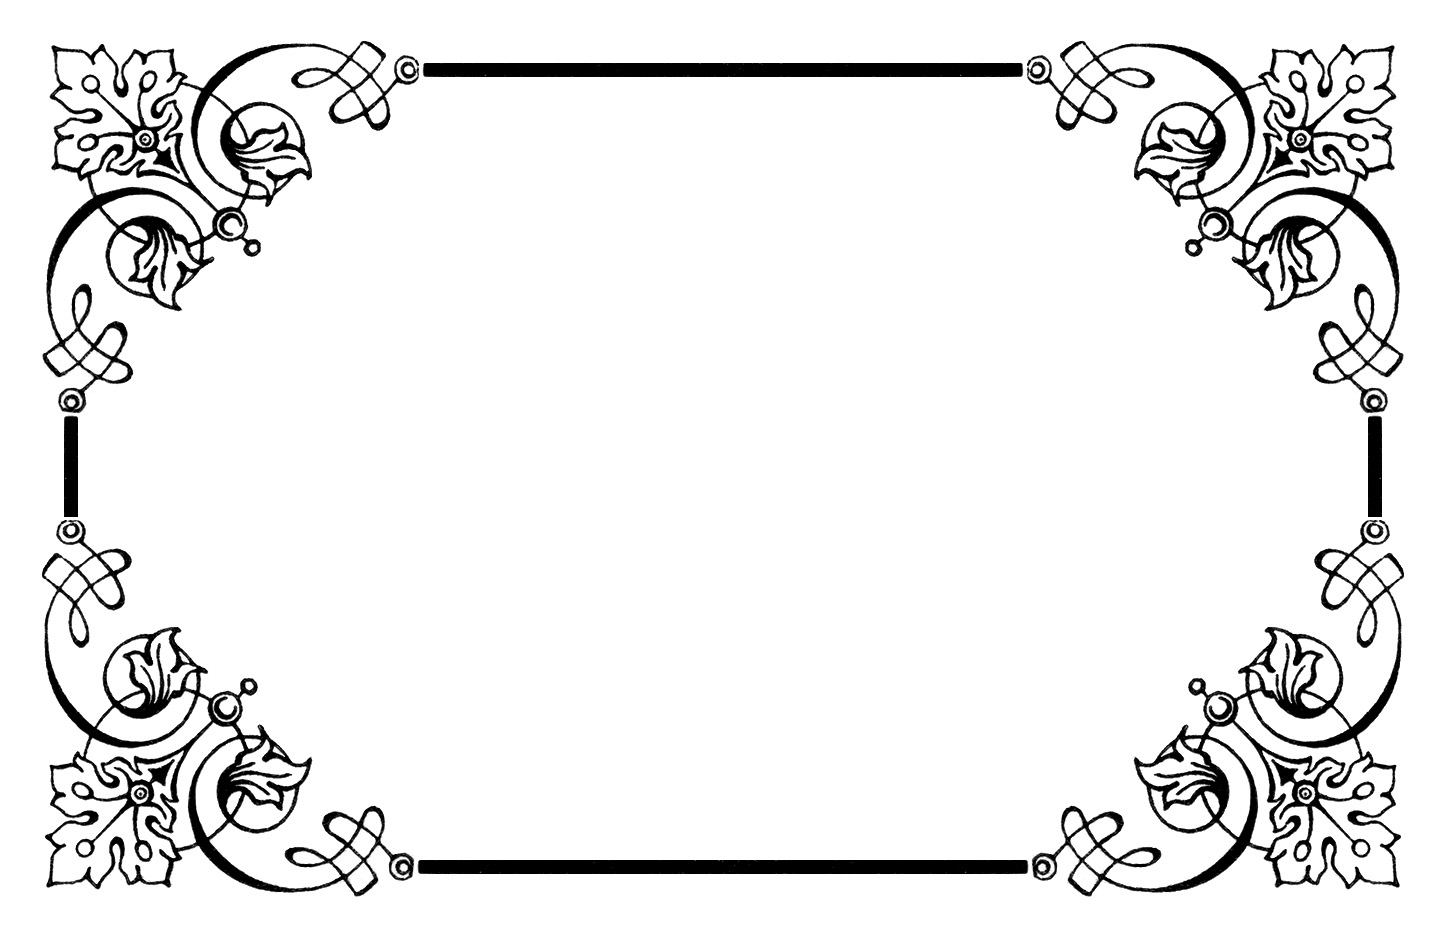 Microsoft wedding clipart graphic transparent download Wedding borders free wedding clipart borders and frames – Gclipart.com graphic transparent download